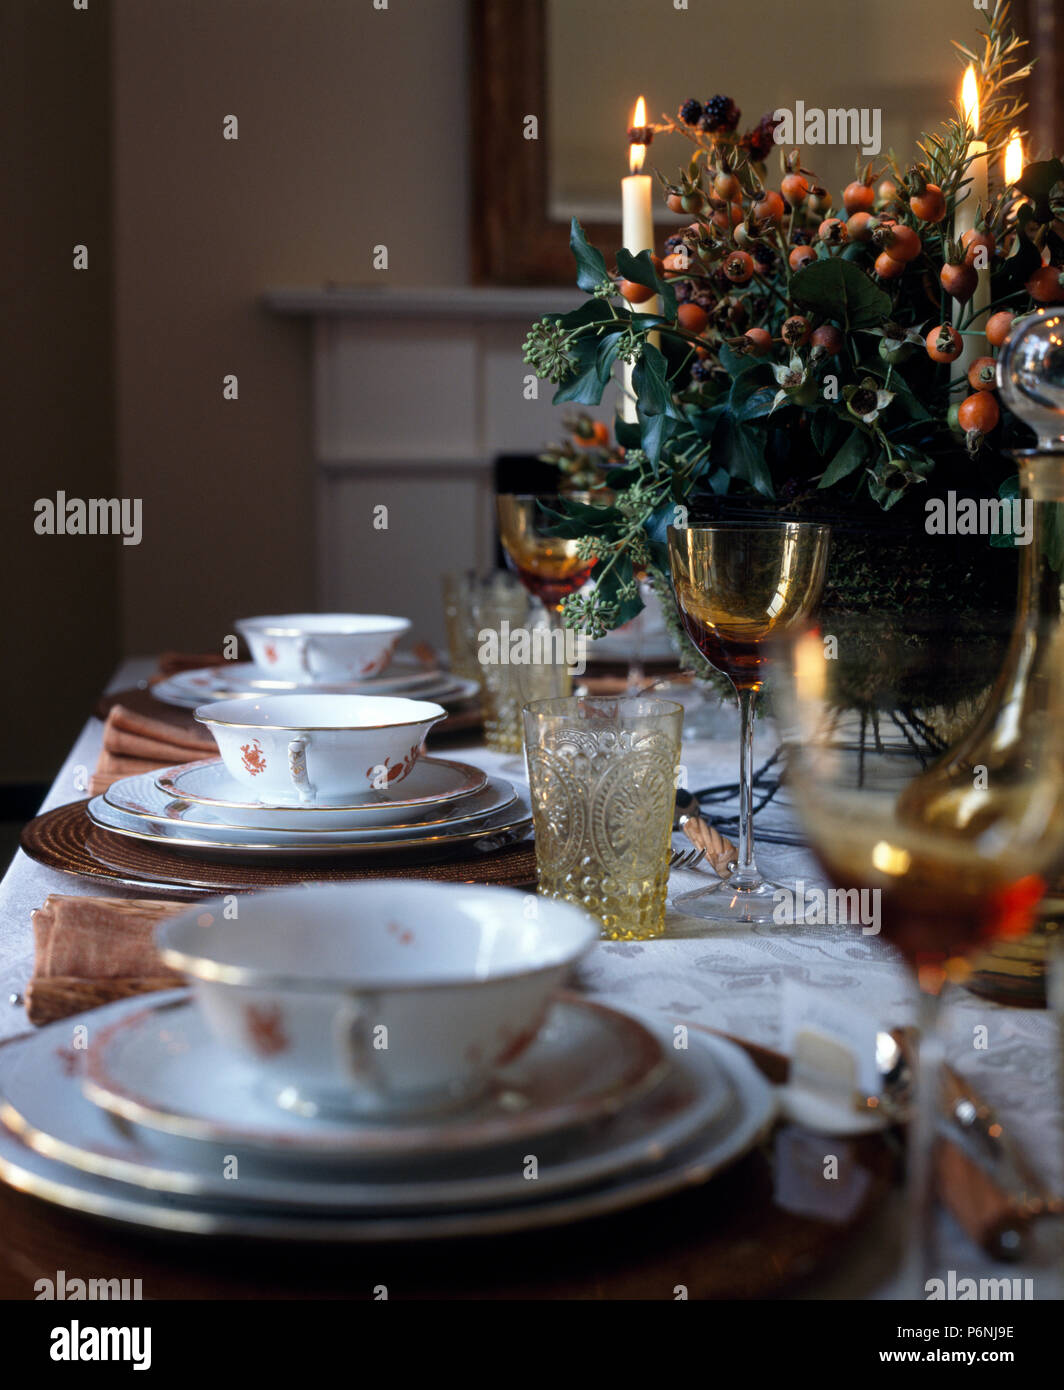 Close-up of vintage china soup bowls on a Christmas table set for dinner with lighted candles and festive floral display & Close-up of vintage china soup bowls on a Christmas table set for ...